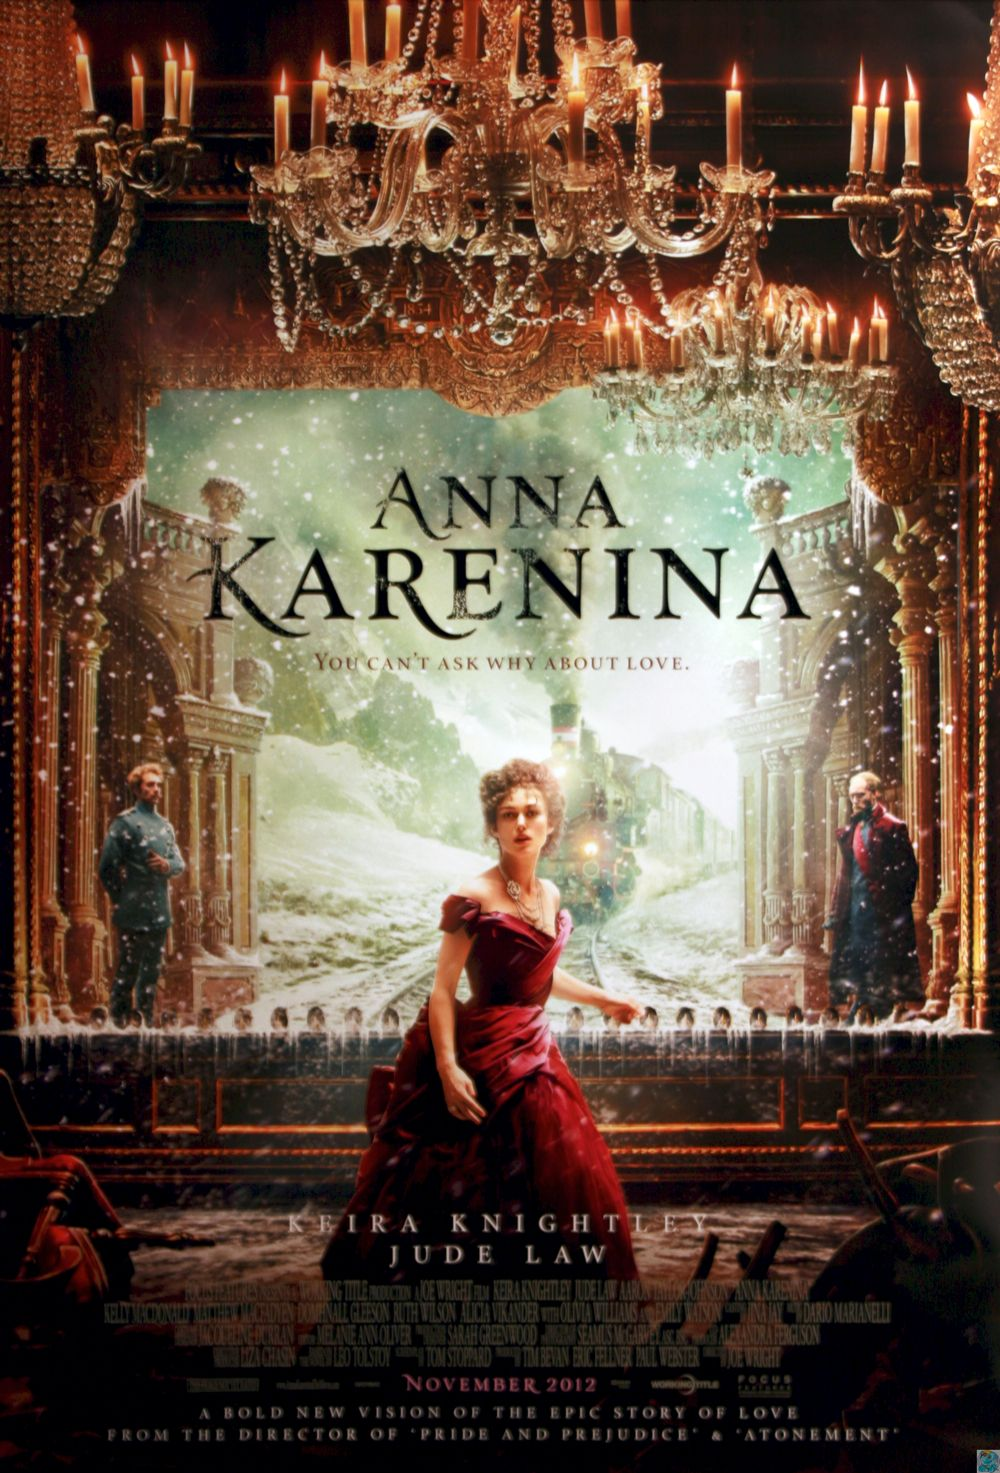 ANNA KARENINA. Dir.: Joe Wright